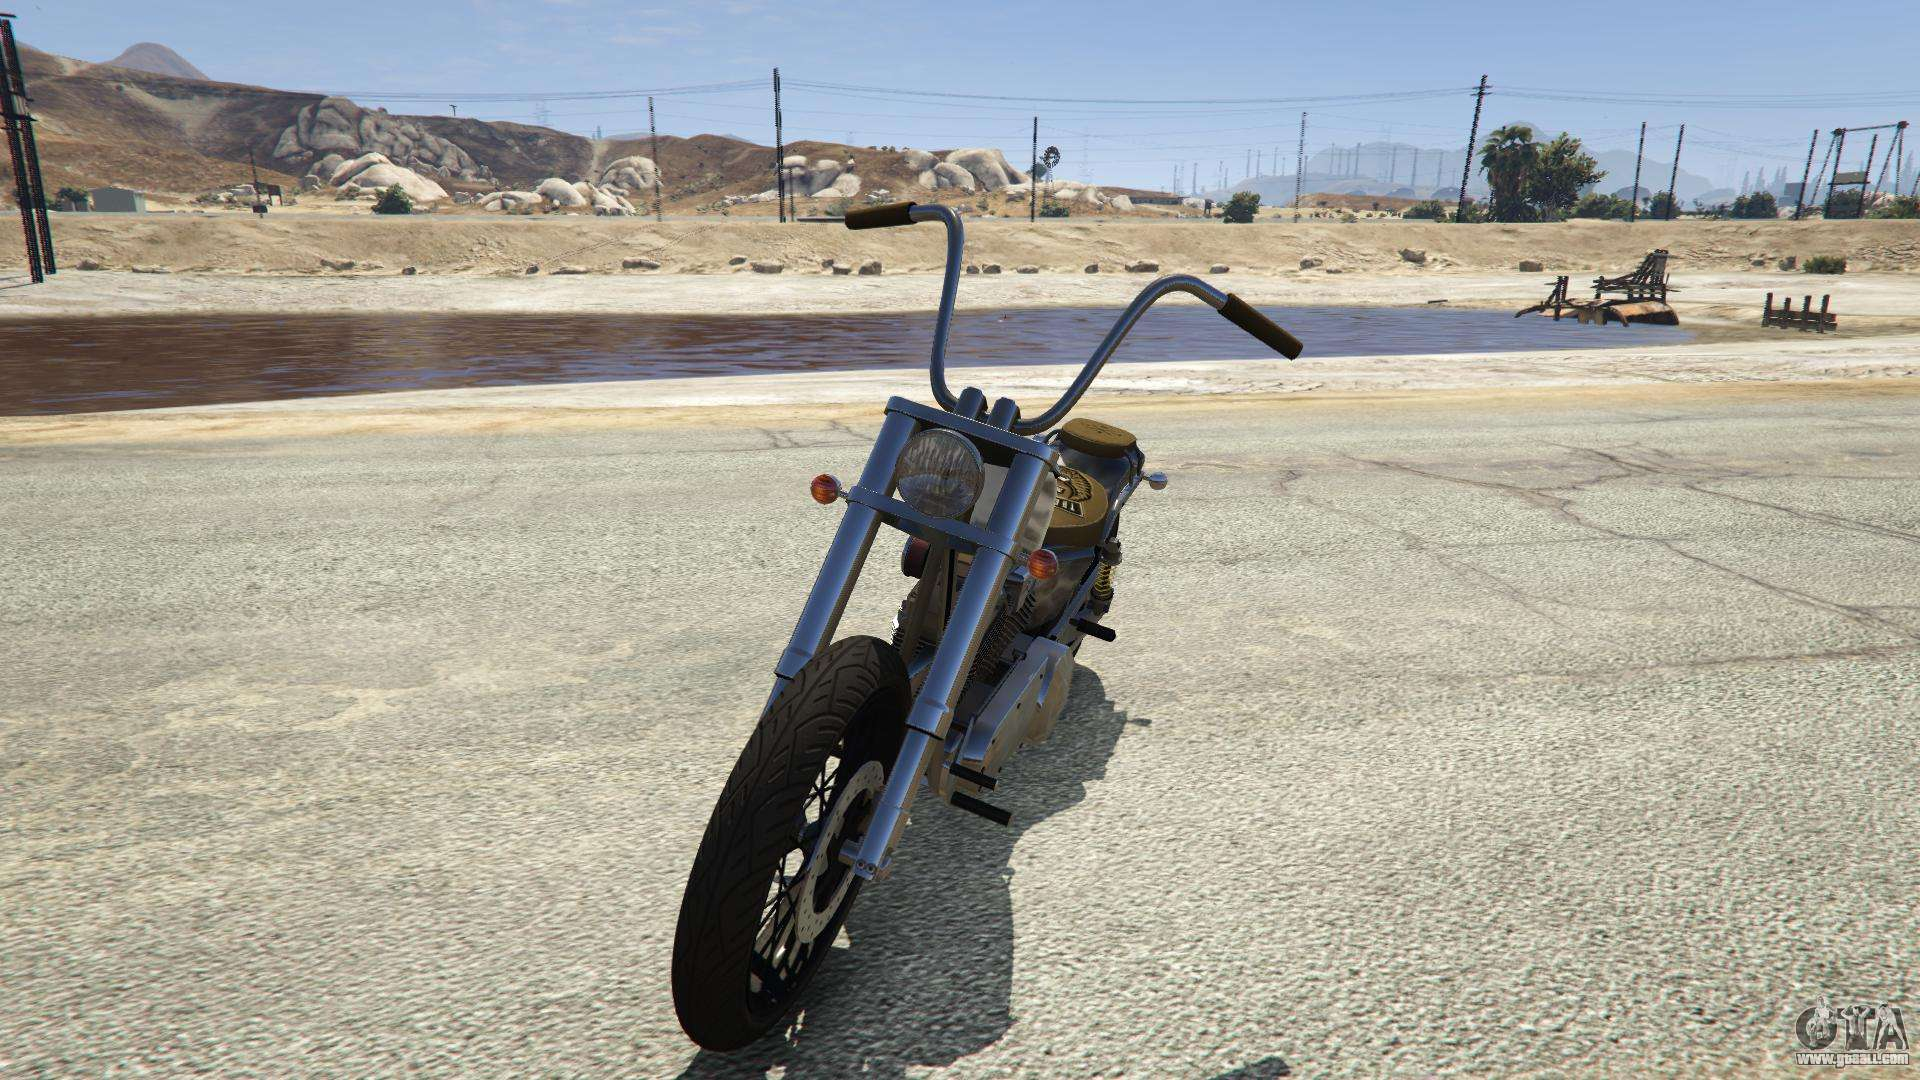 Western Motorcycle Company Daemon from GTA 5